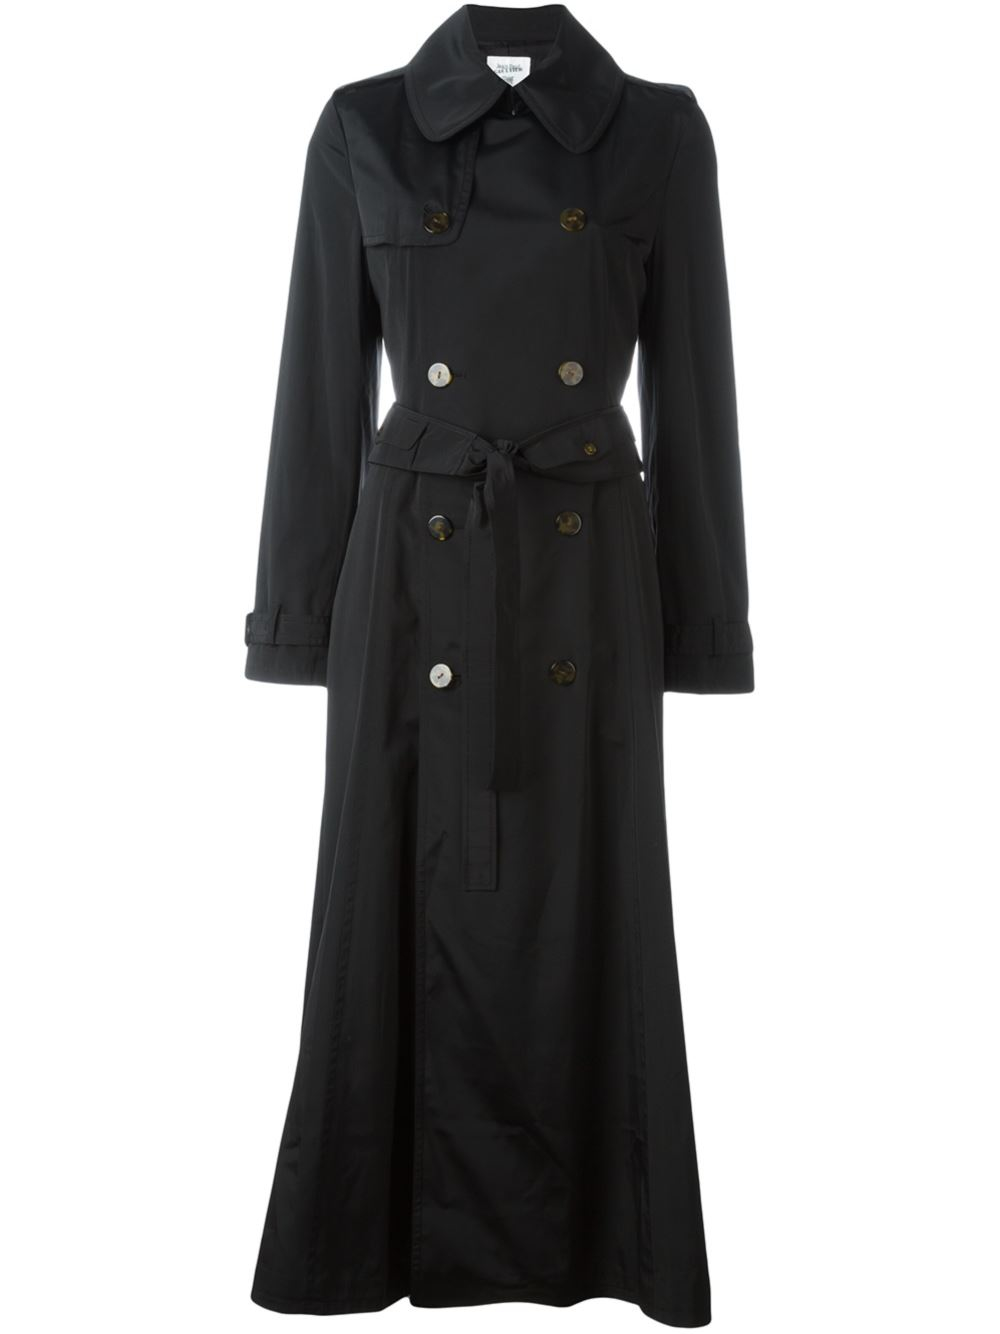 Burberry London Black Burberry London long double-breasted trench coat with removable hood, pointed collar, dual slit pockets, belt at waist, removable quilted lining and button closures at front. Designer size